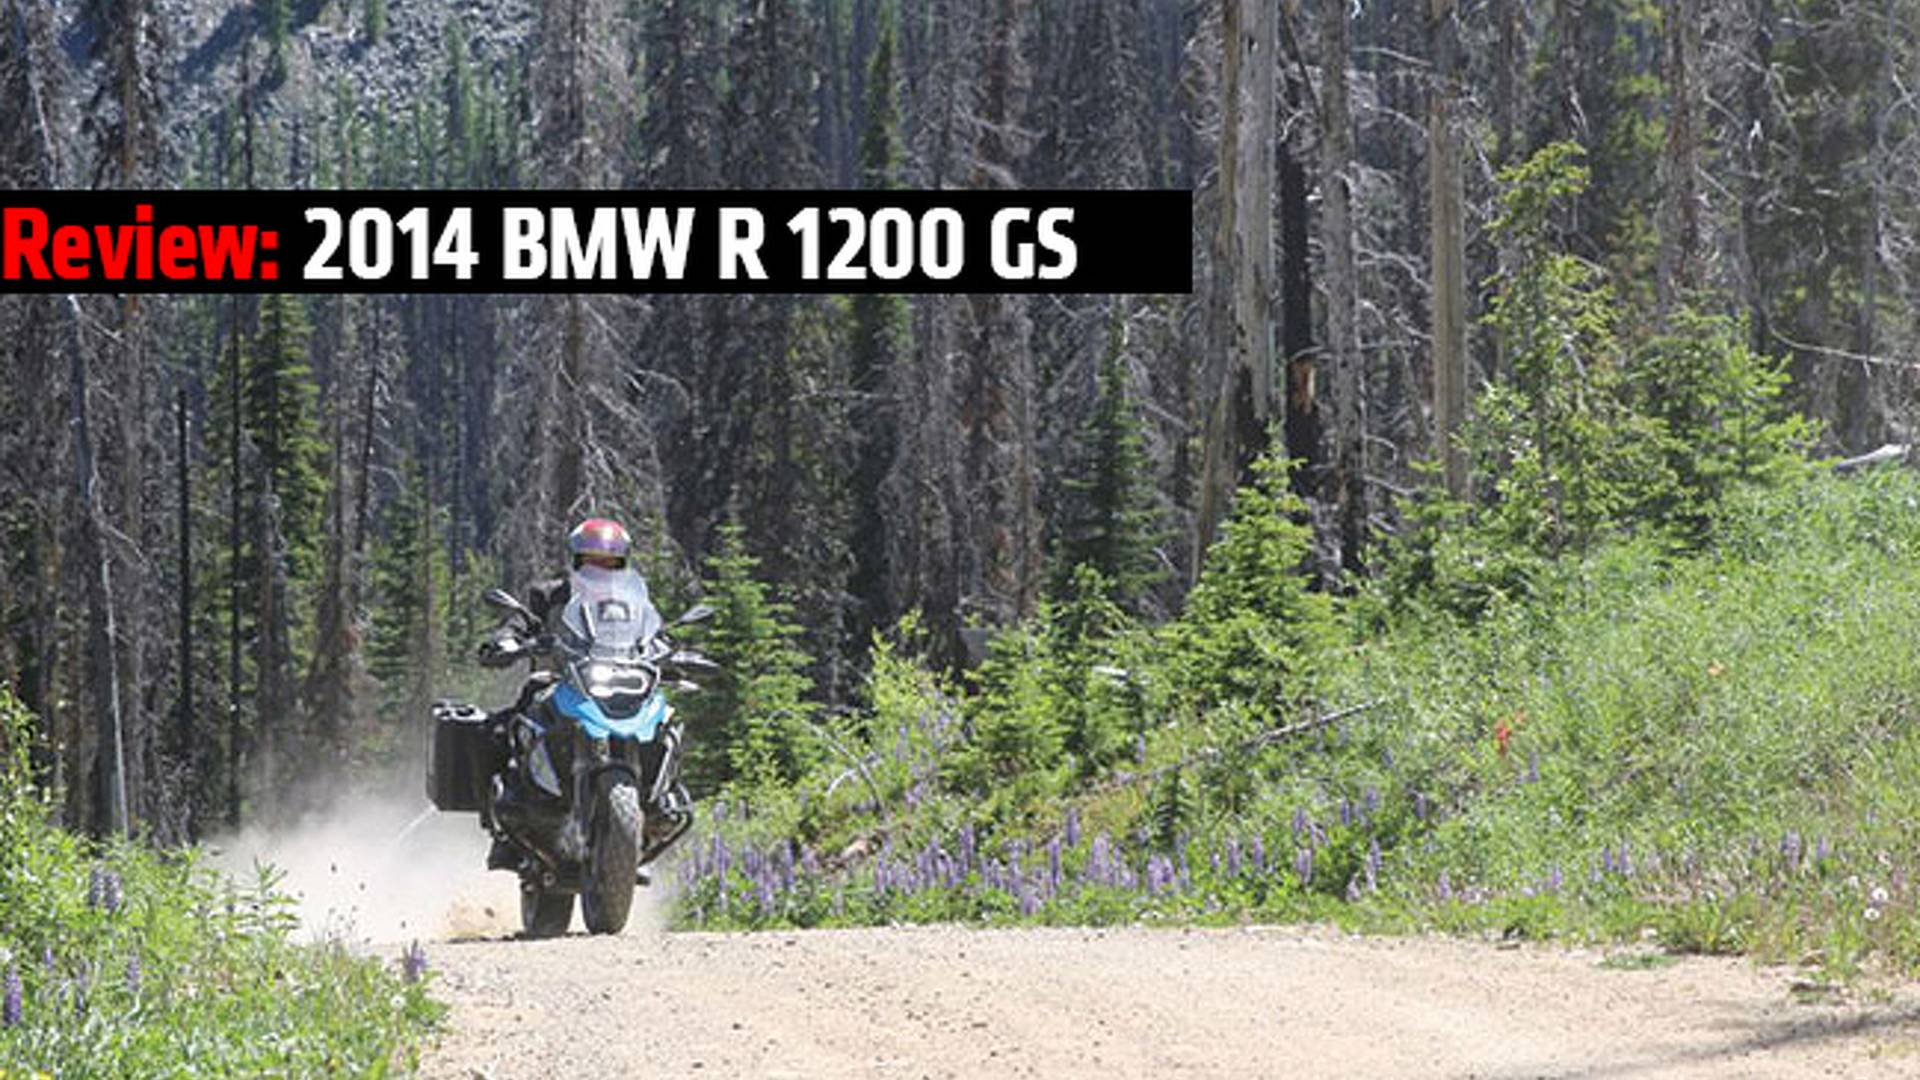 Review: 2014 BMW R 1200 GS